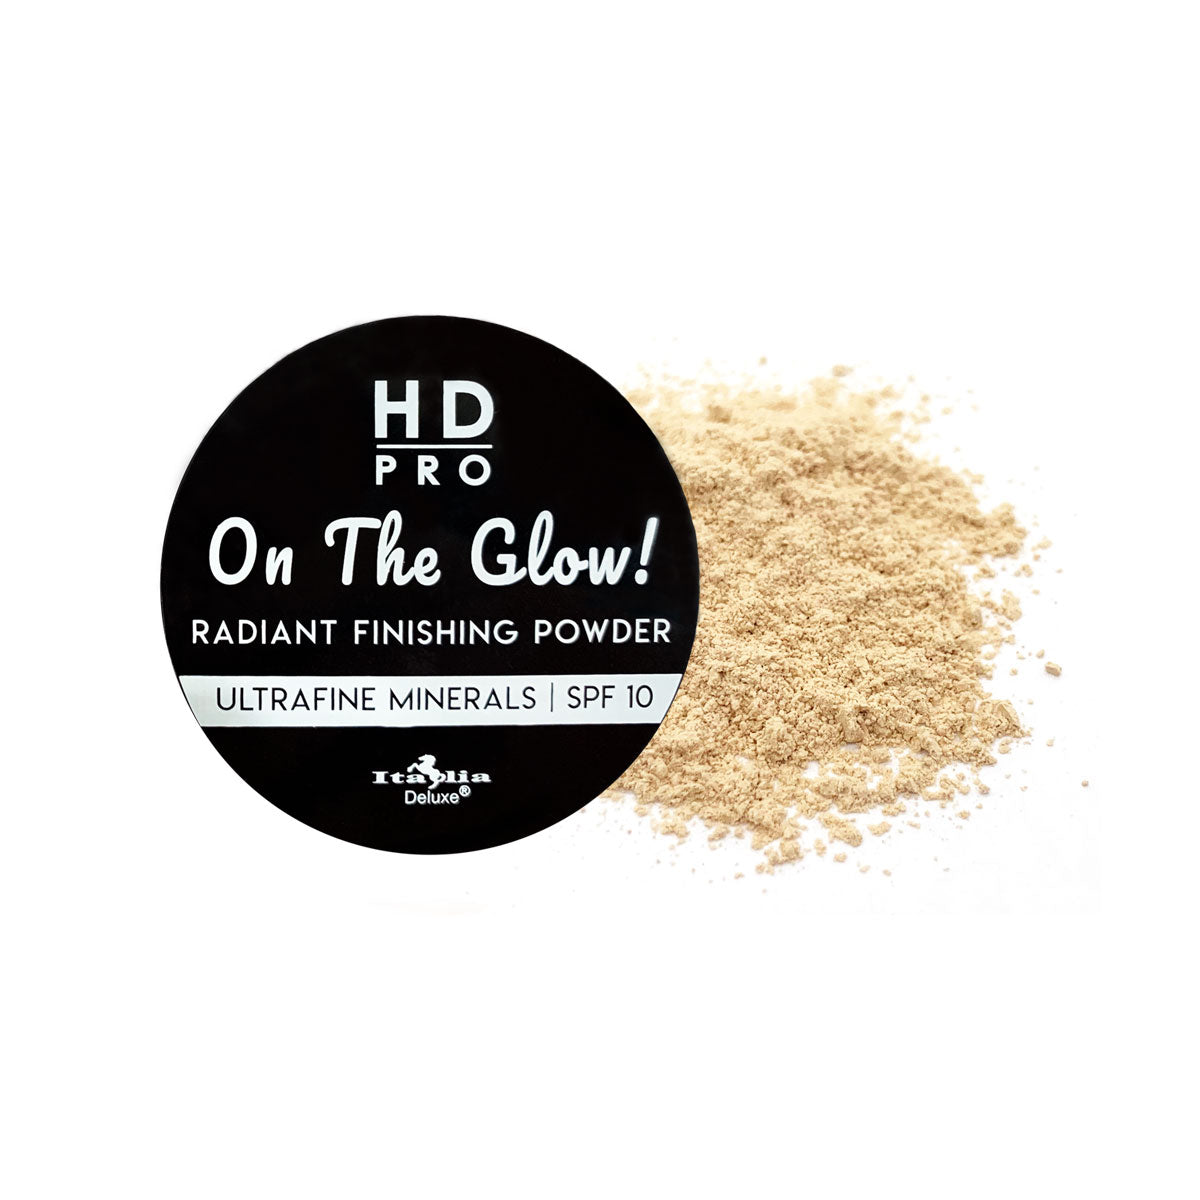 HD Pro On The Glow! Radiant Finishing Powder